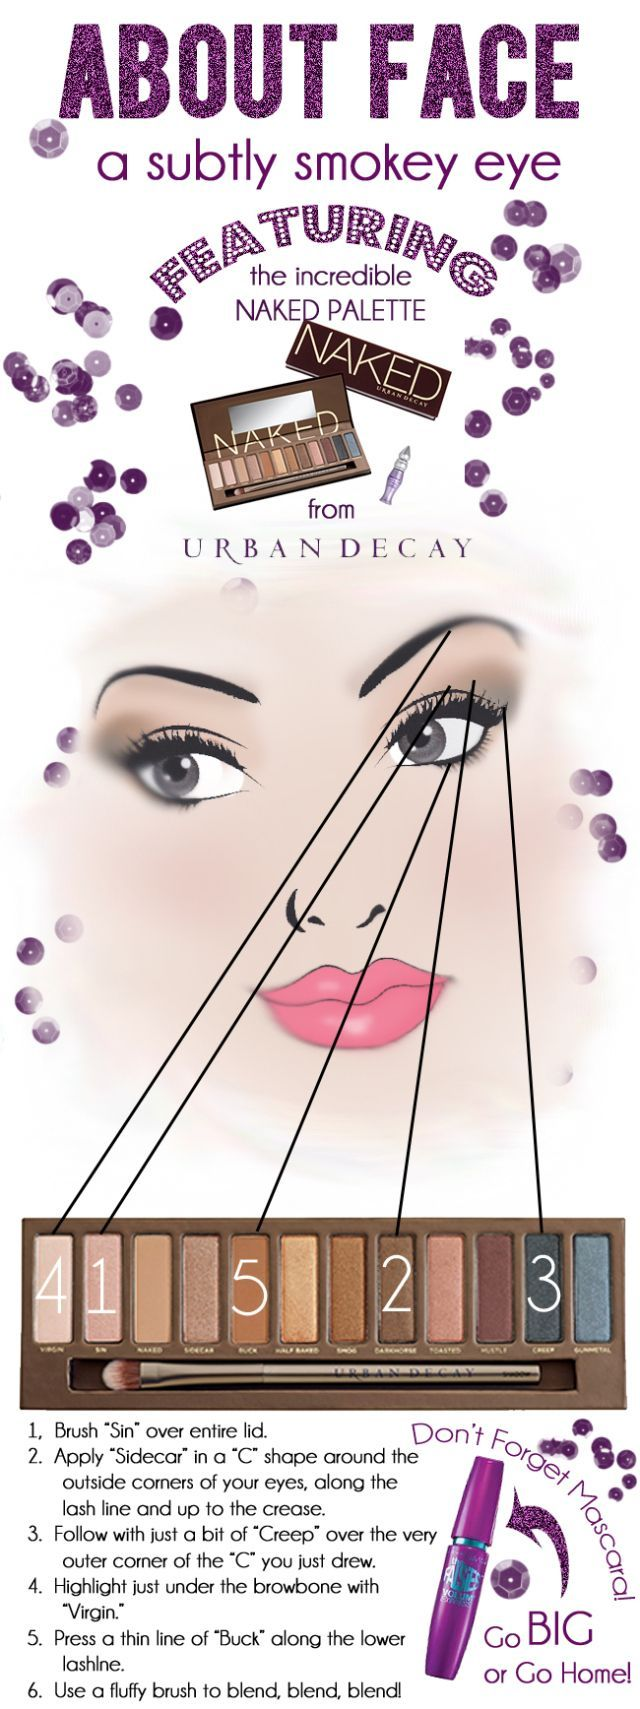 We bring you this subtle smokey eye tutorial! Make your eyes look amazing easily! This tutorial features Naked Palette by Urban Decay!